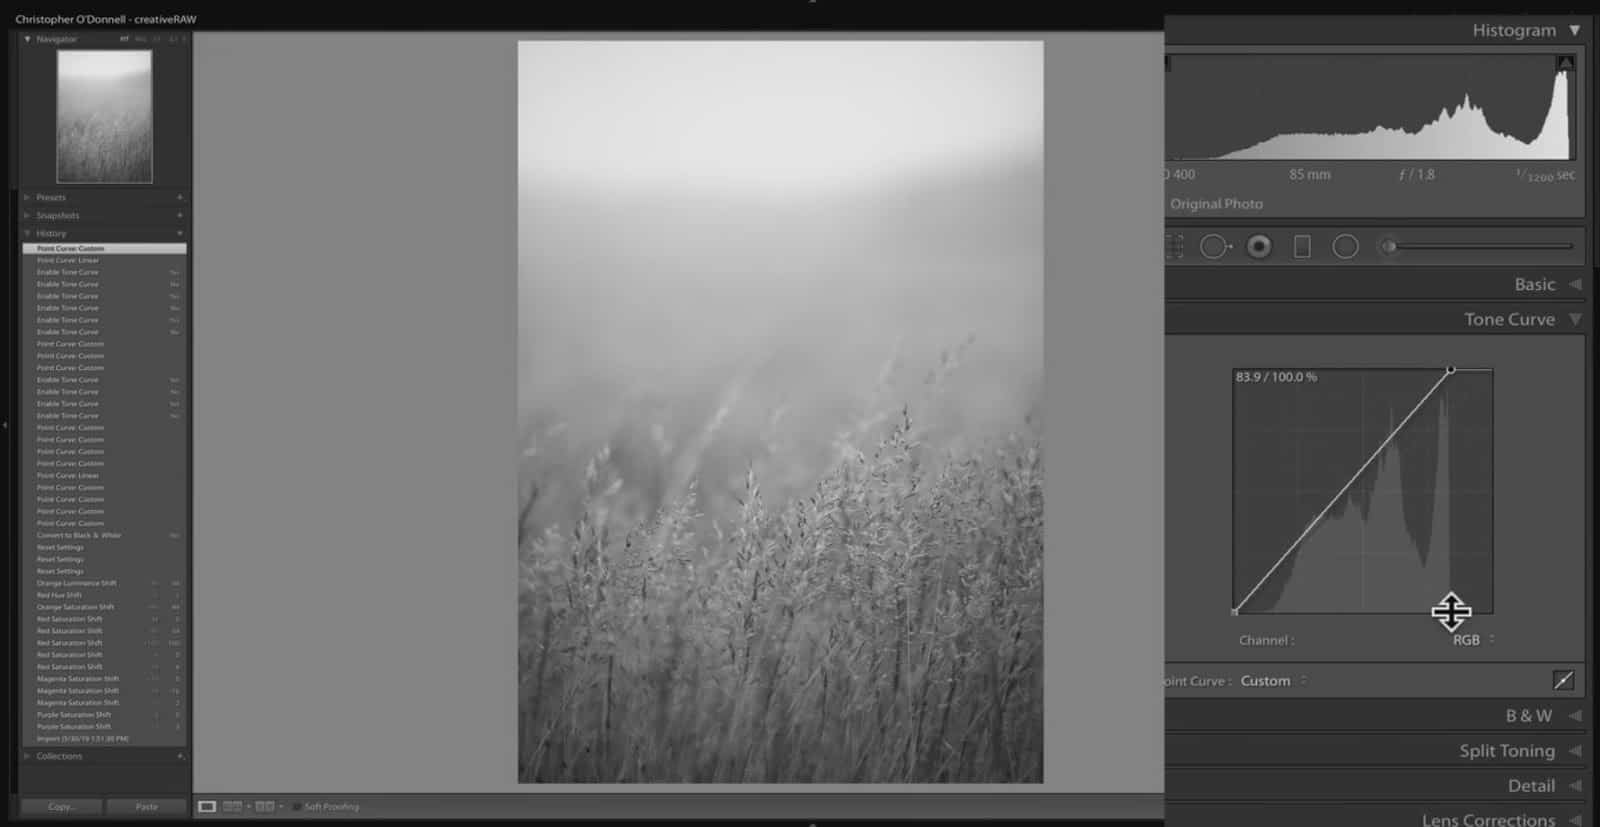 Changing Brightest Tone in Lightroom - CreativeRAW